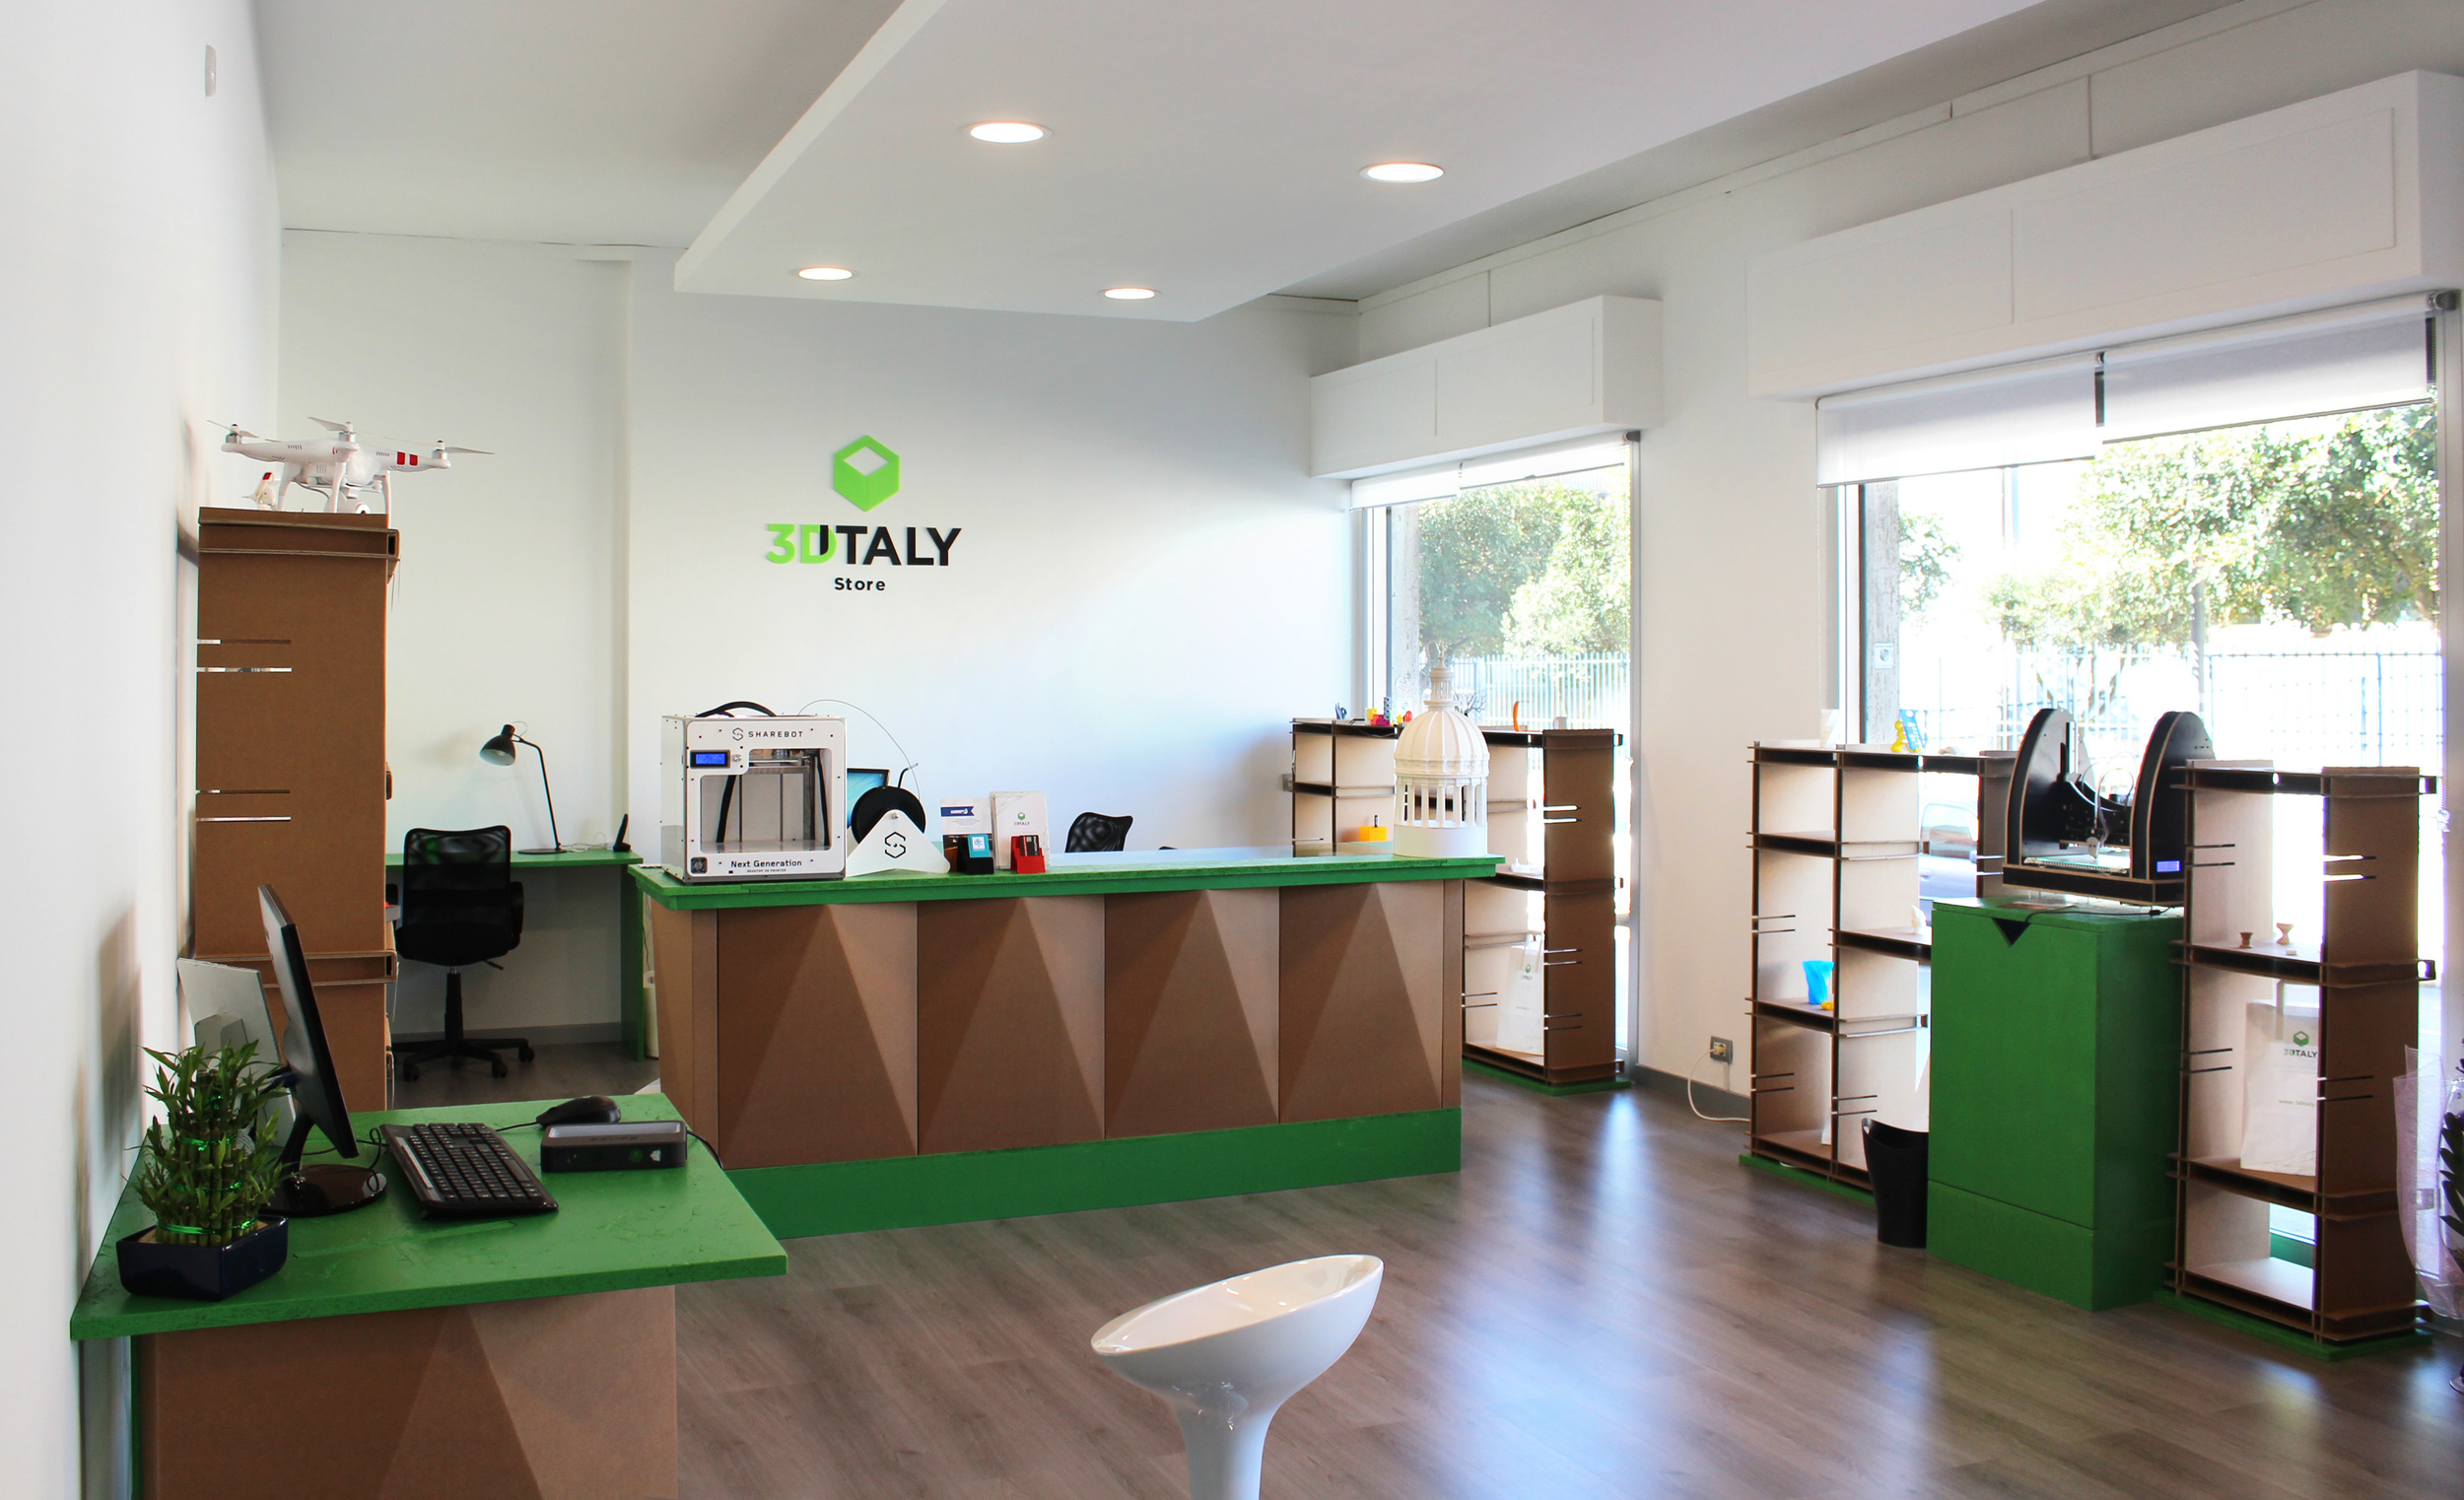 3DiTALY Becomes the Largest 3D Printer Store Network?